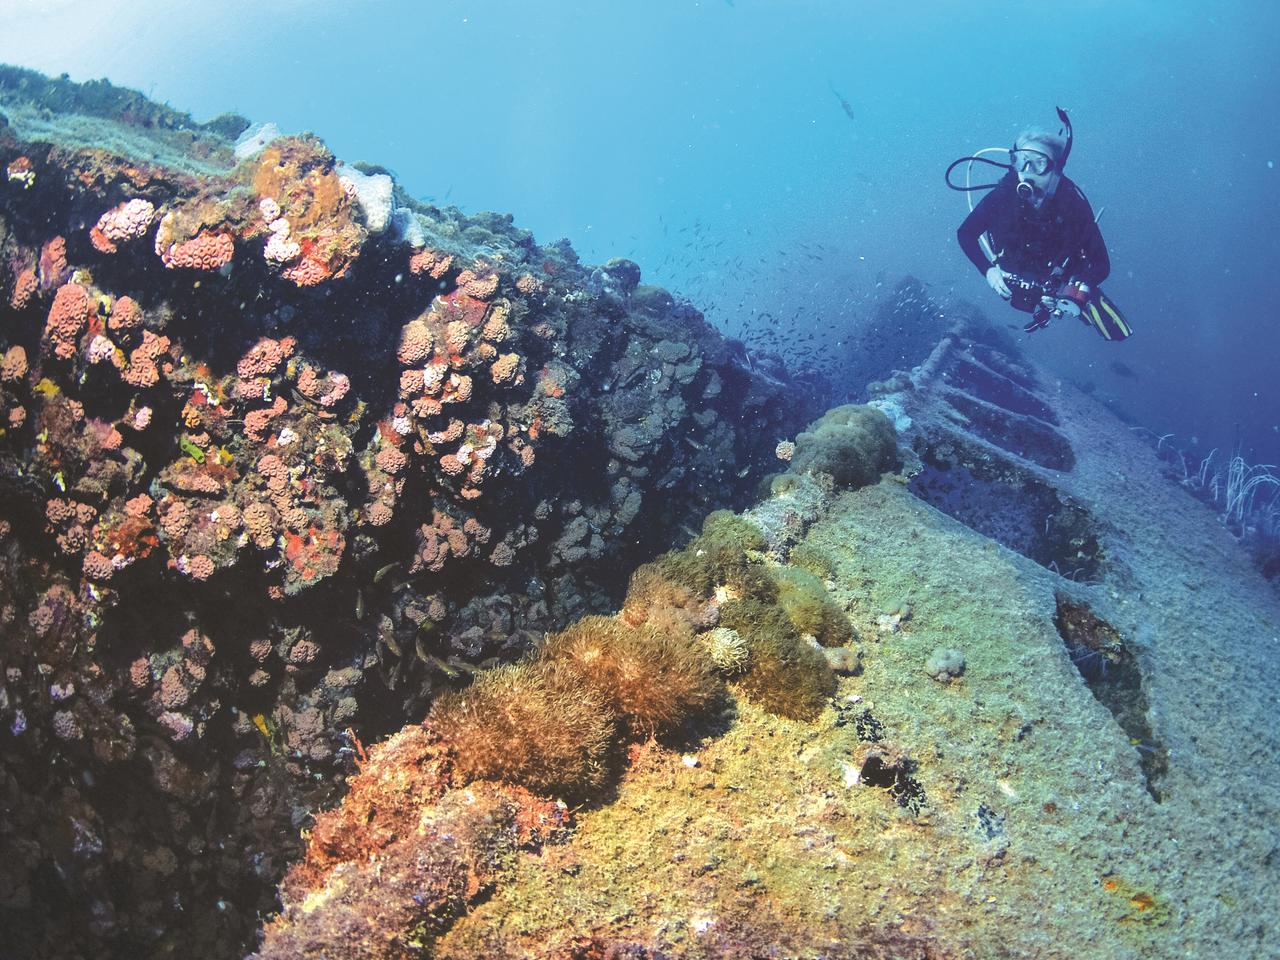 2AMHEW5 Diver exploring the historic SS Yongala shipwreck, Townsville, Great Barrier Reef, Queensland, Australia, Coral Sea, South Pacific Ocean (MR)